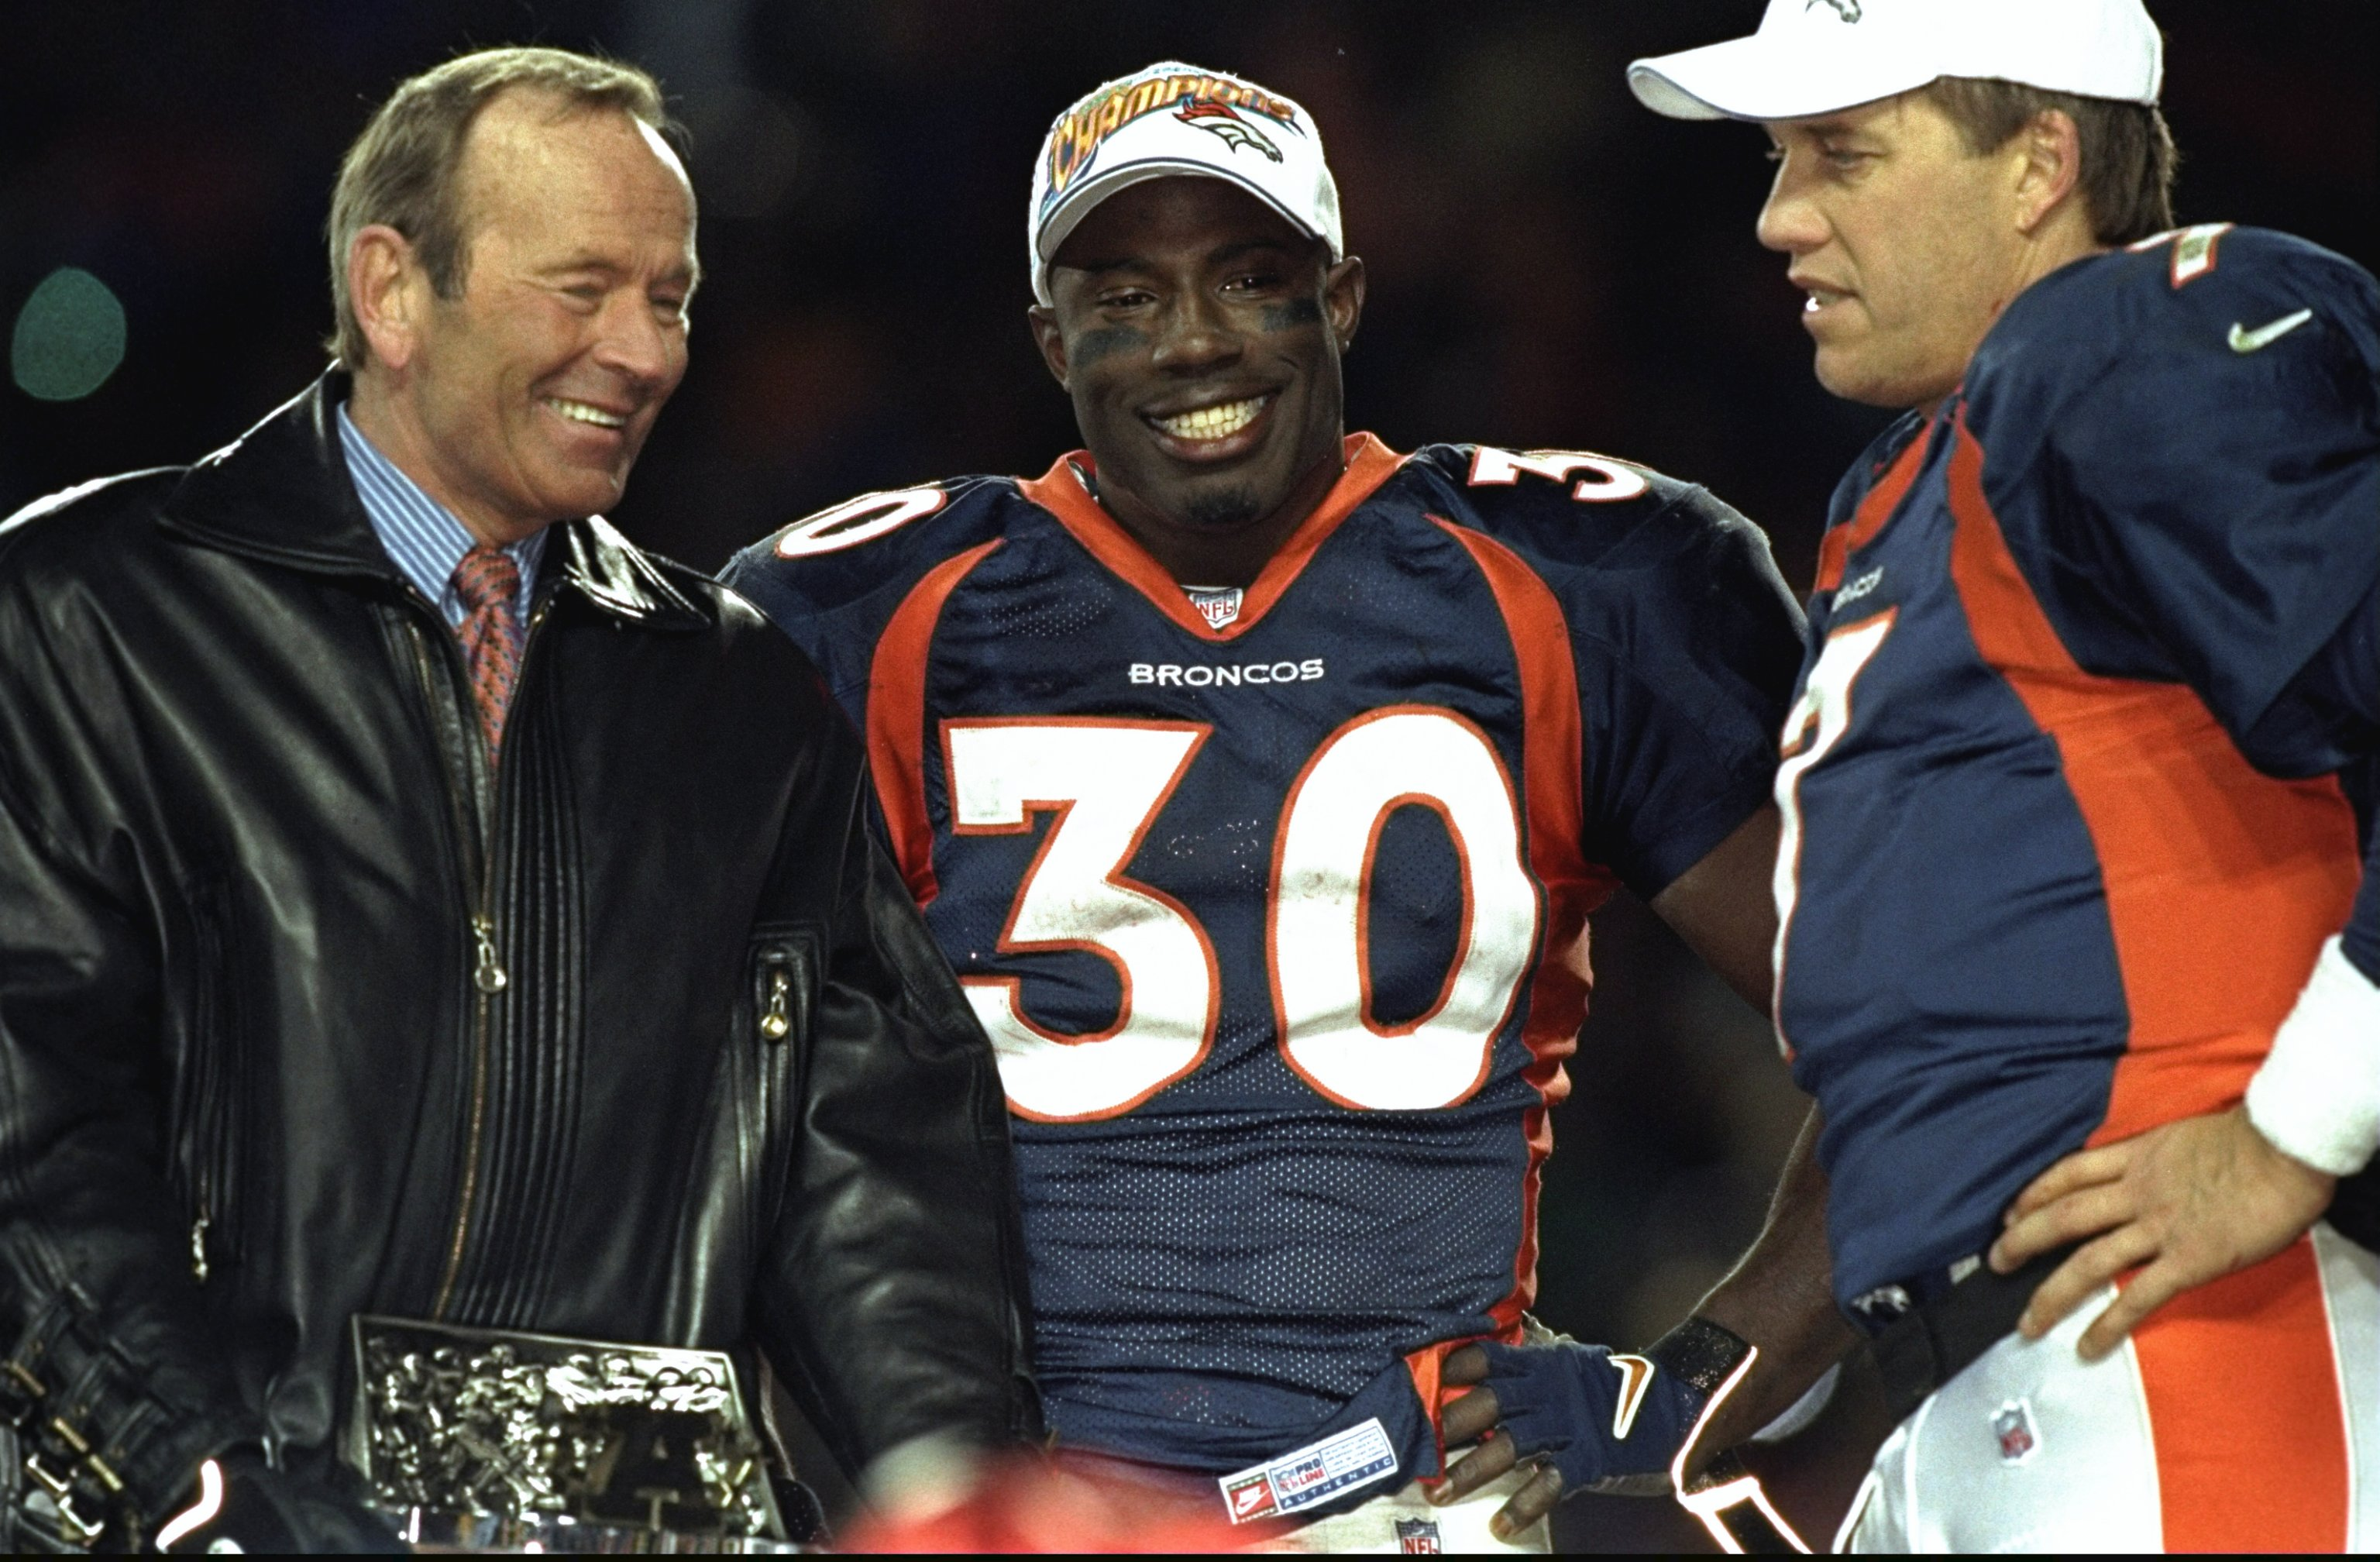 Terrell Davis of the Denver Broncos stands with Broncos owner Pat Bowlen, left, and John Elway, right, after winning the AFC Championship Game in 1999 against the New York Jets at Mile High Stadium (credit: Brian Bahr /Allsport)